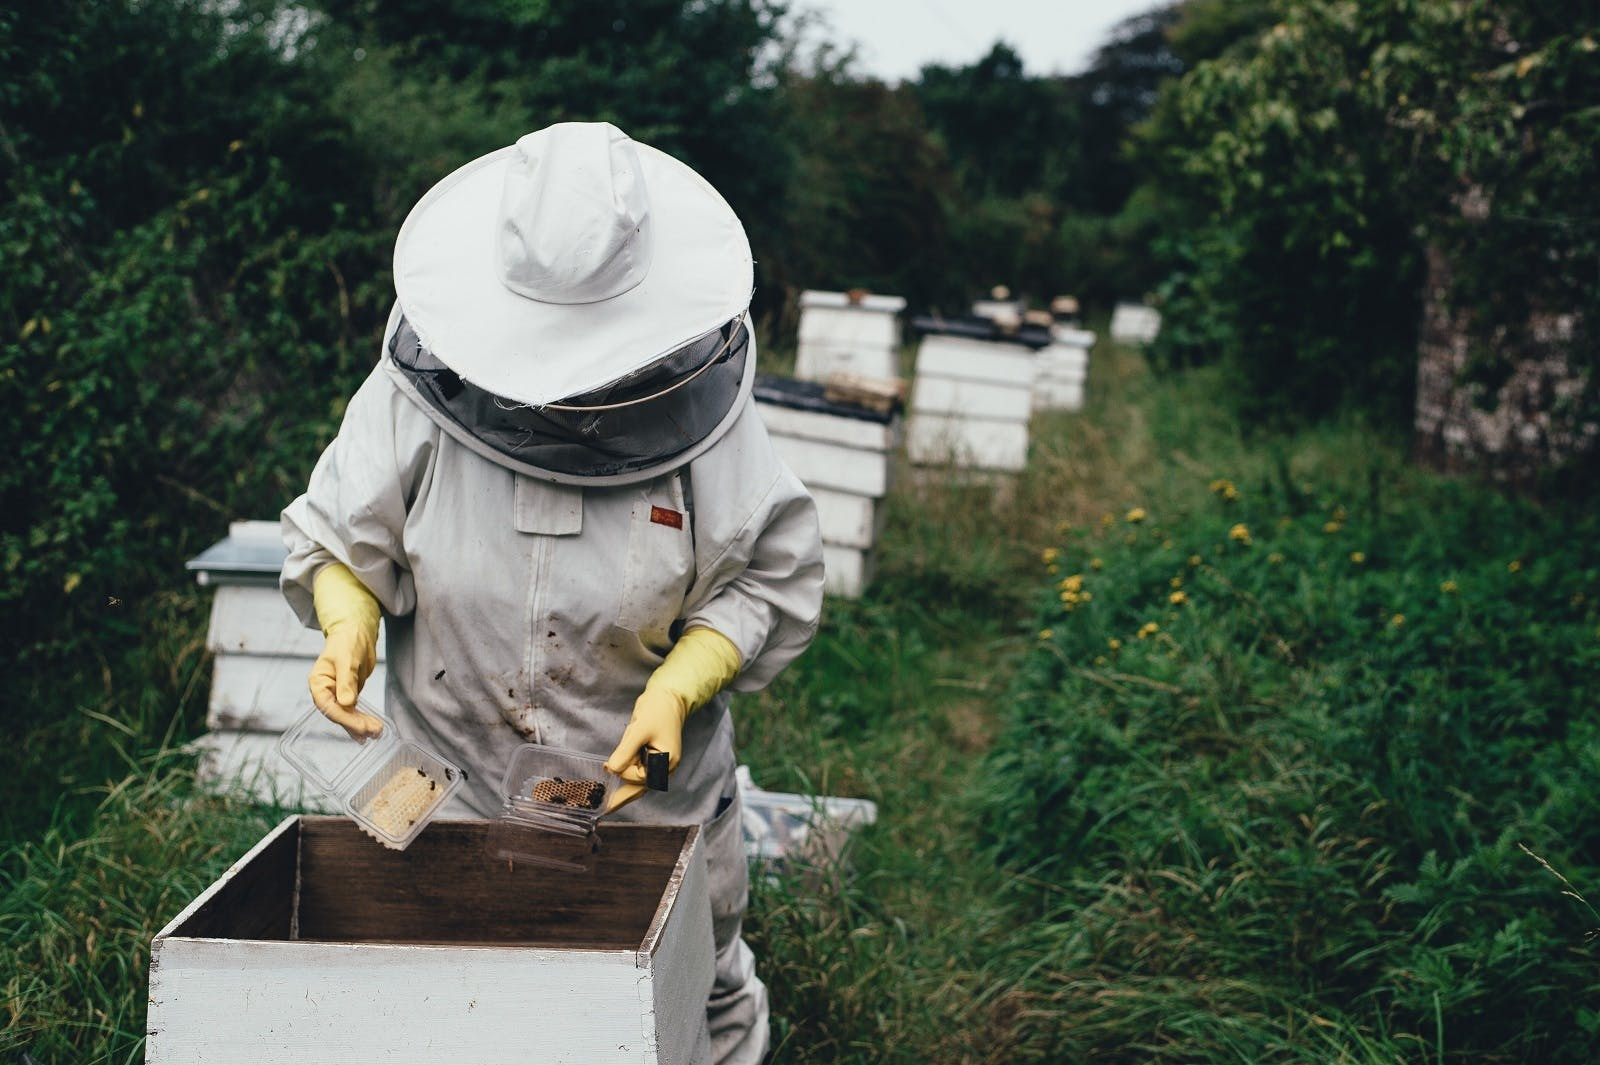 A beekeeper checking a hive. Sponsoring a beehive is another easy yet effective way to help save the bees from bee extinction.